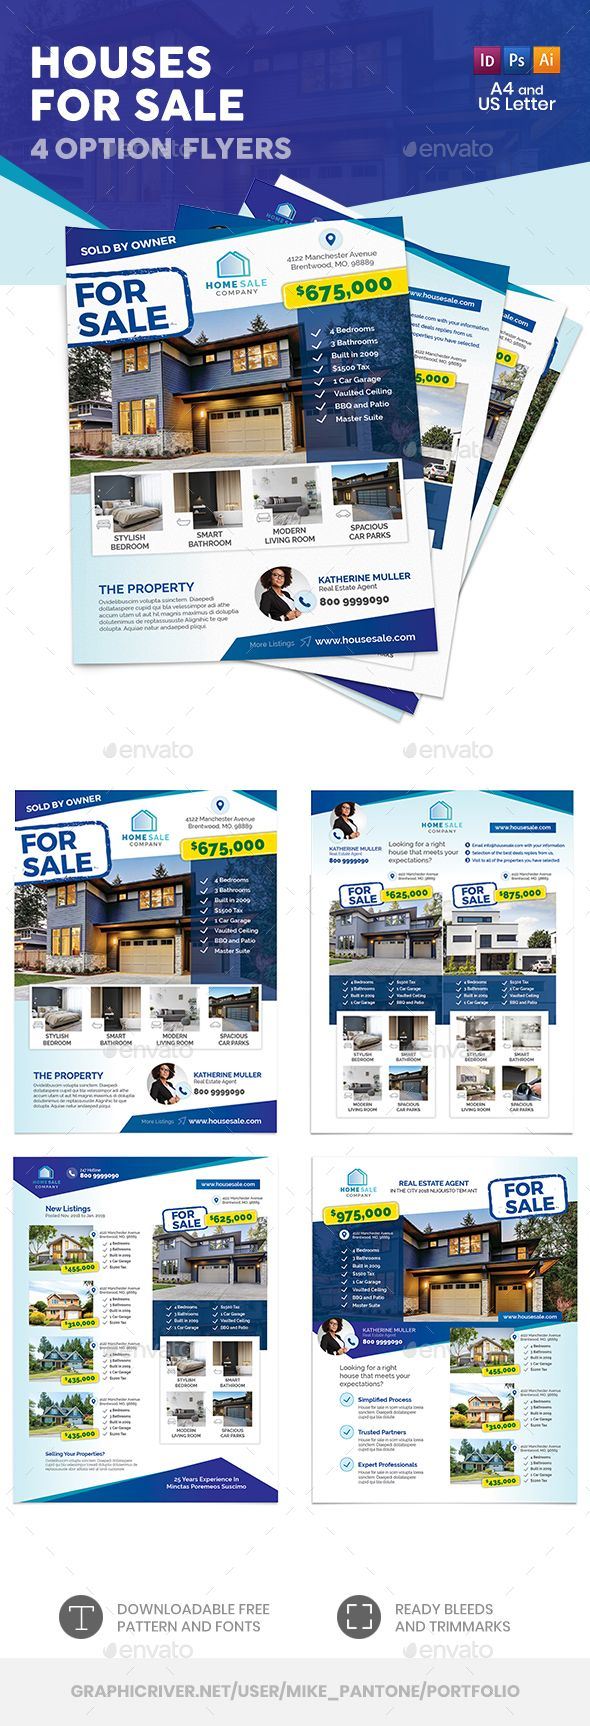 houses for sale flyer templates psd vector eps indesign indd ai